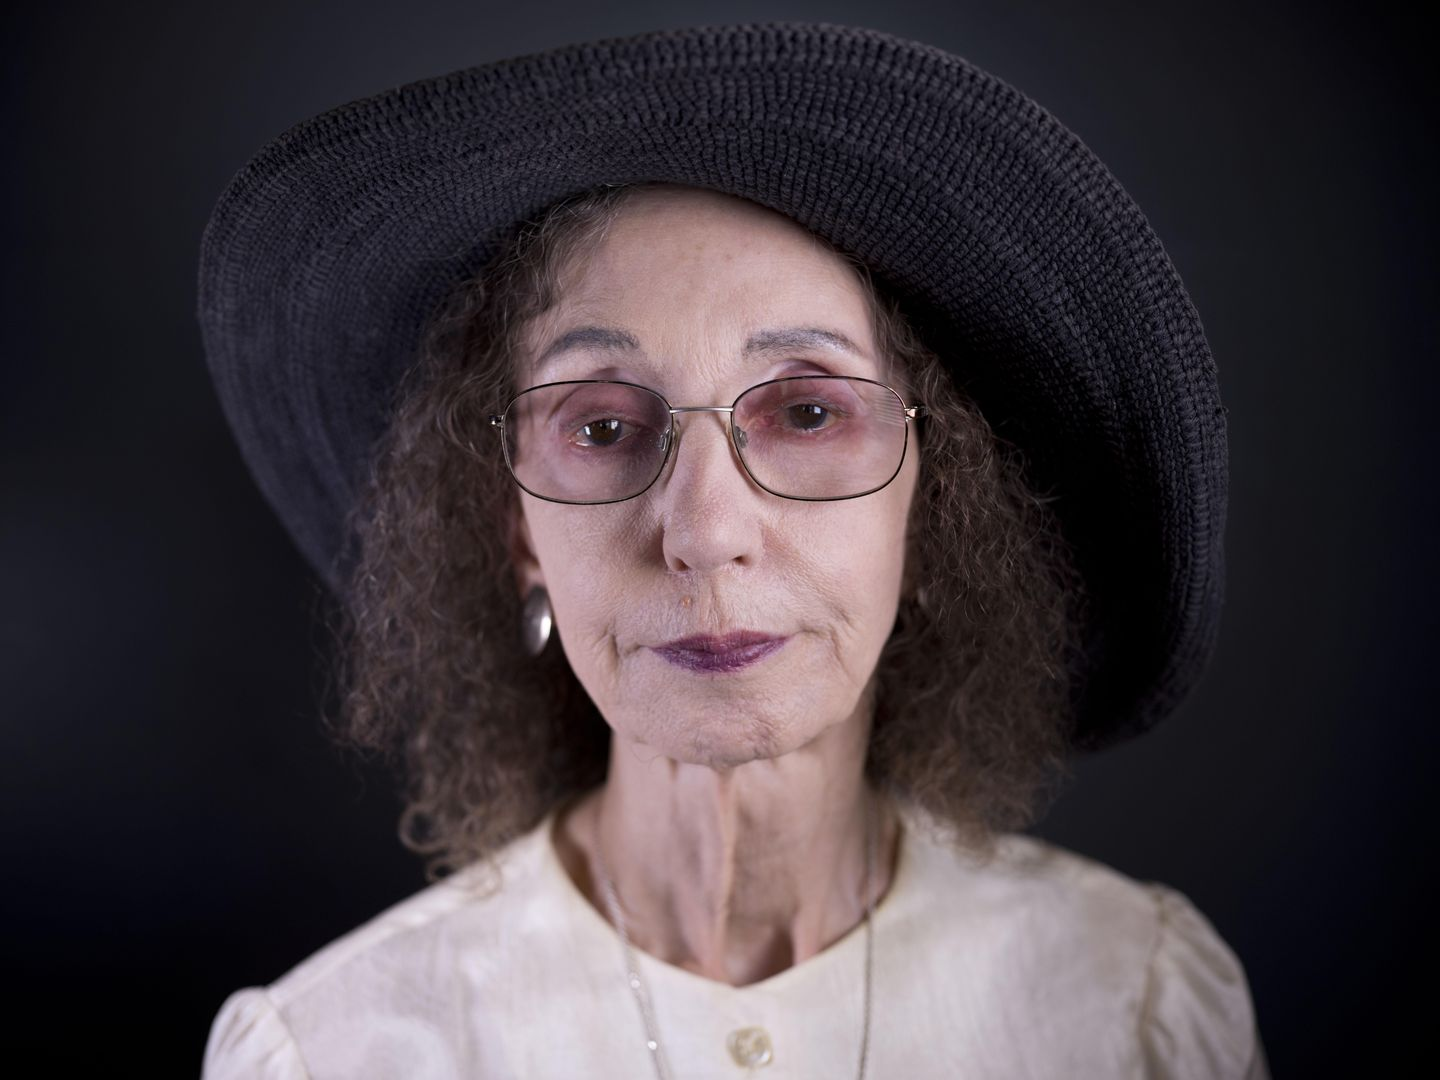 Joyce Carol Oates compares Trump supporters to Nazi-era Germans: 'They knew what was happening'